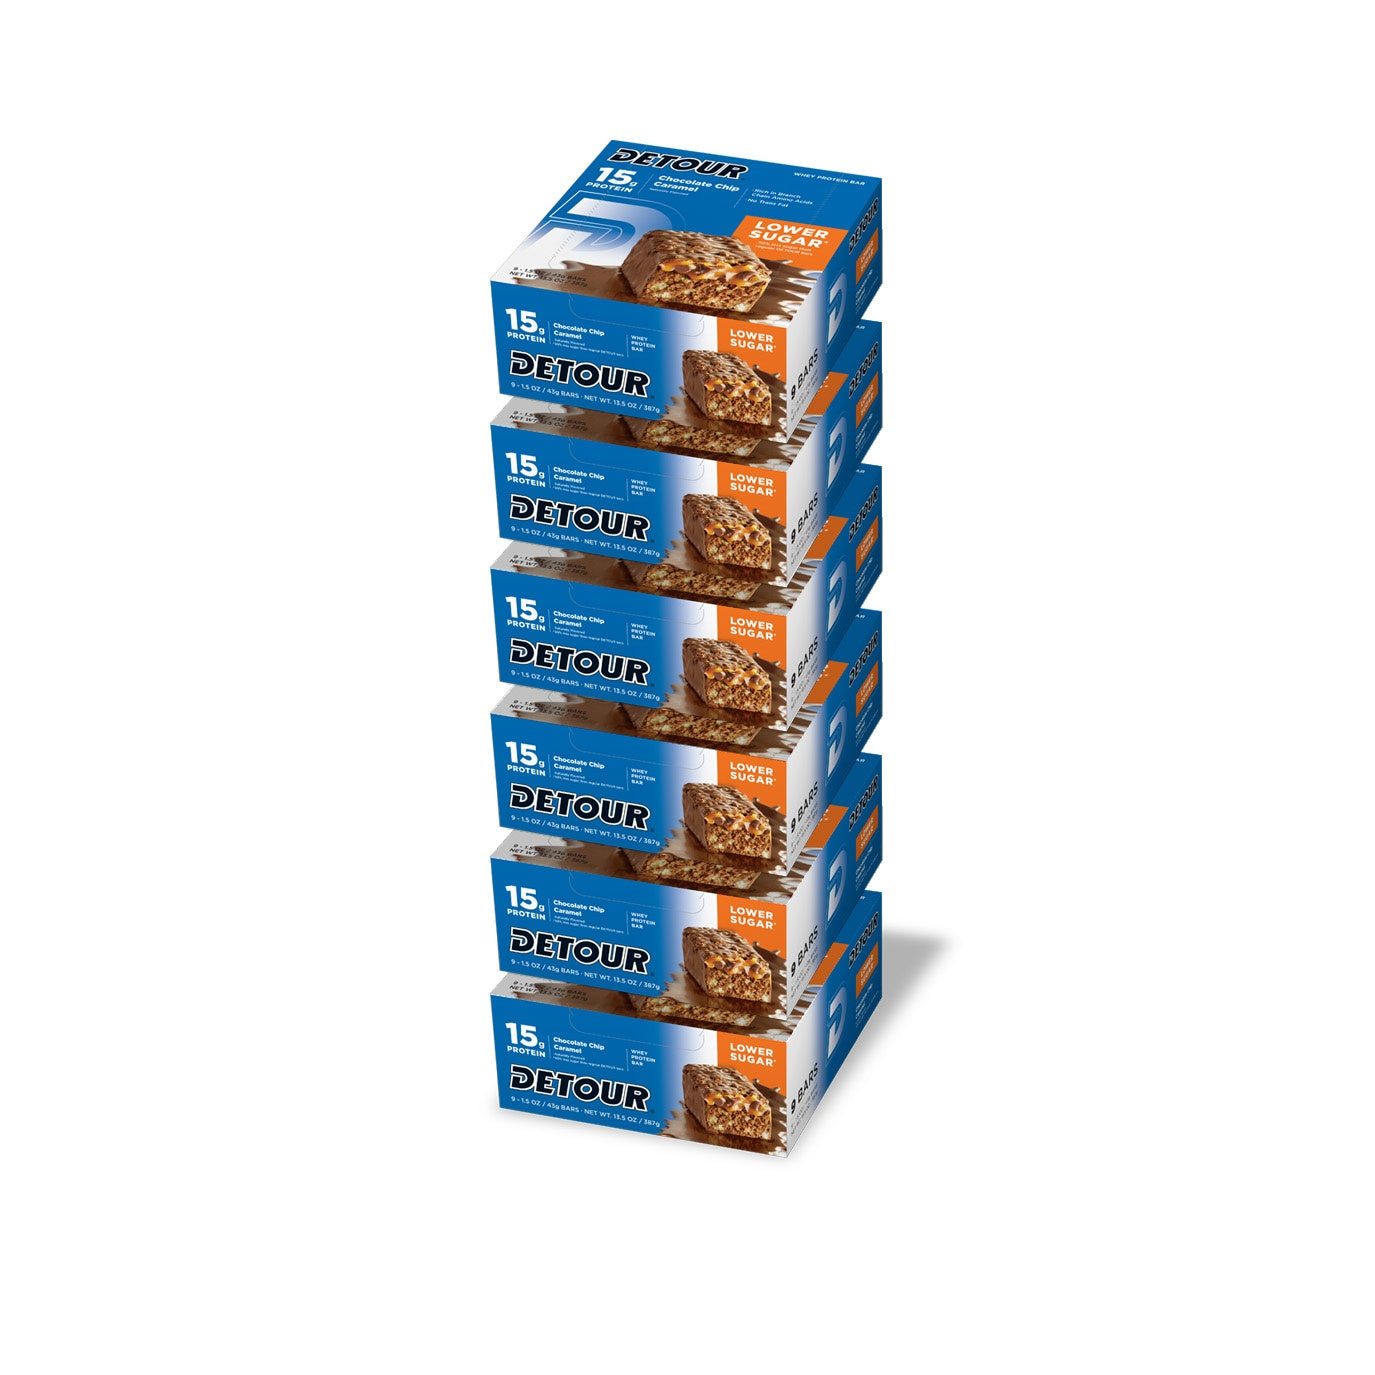 Detour Lower Chocolate Chip Caramel 9ct boxes